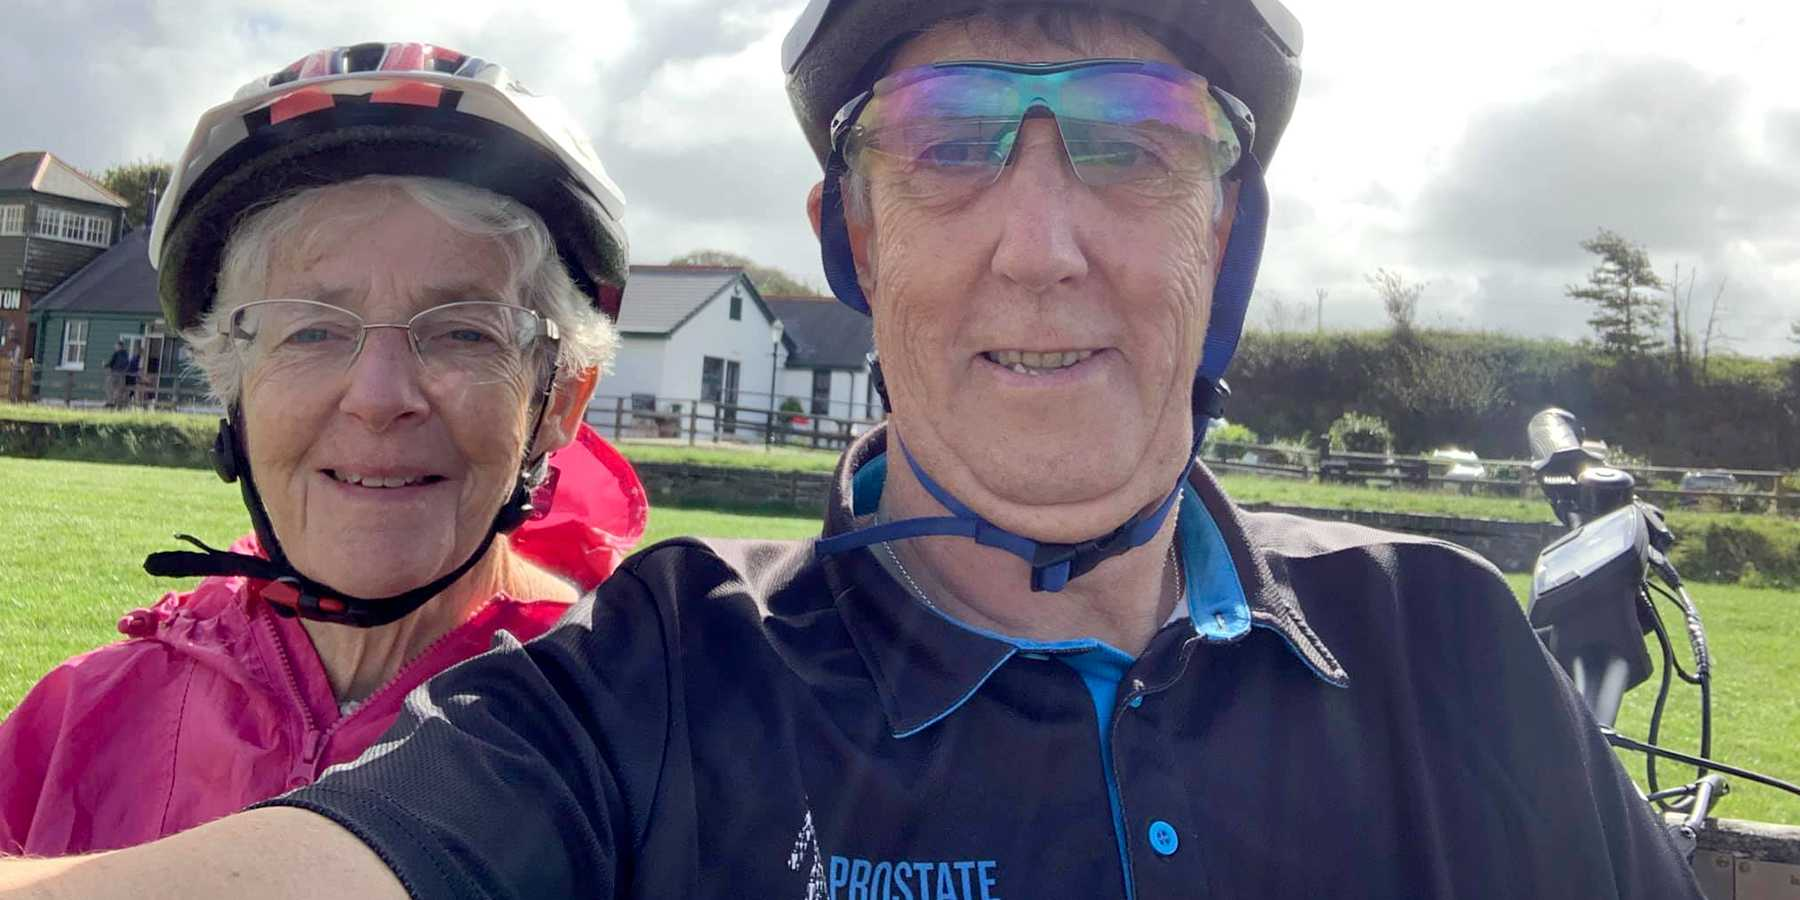 Picture of a man and a woman in cycling outfits, smiling towards the camera outside